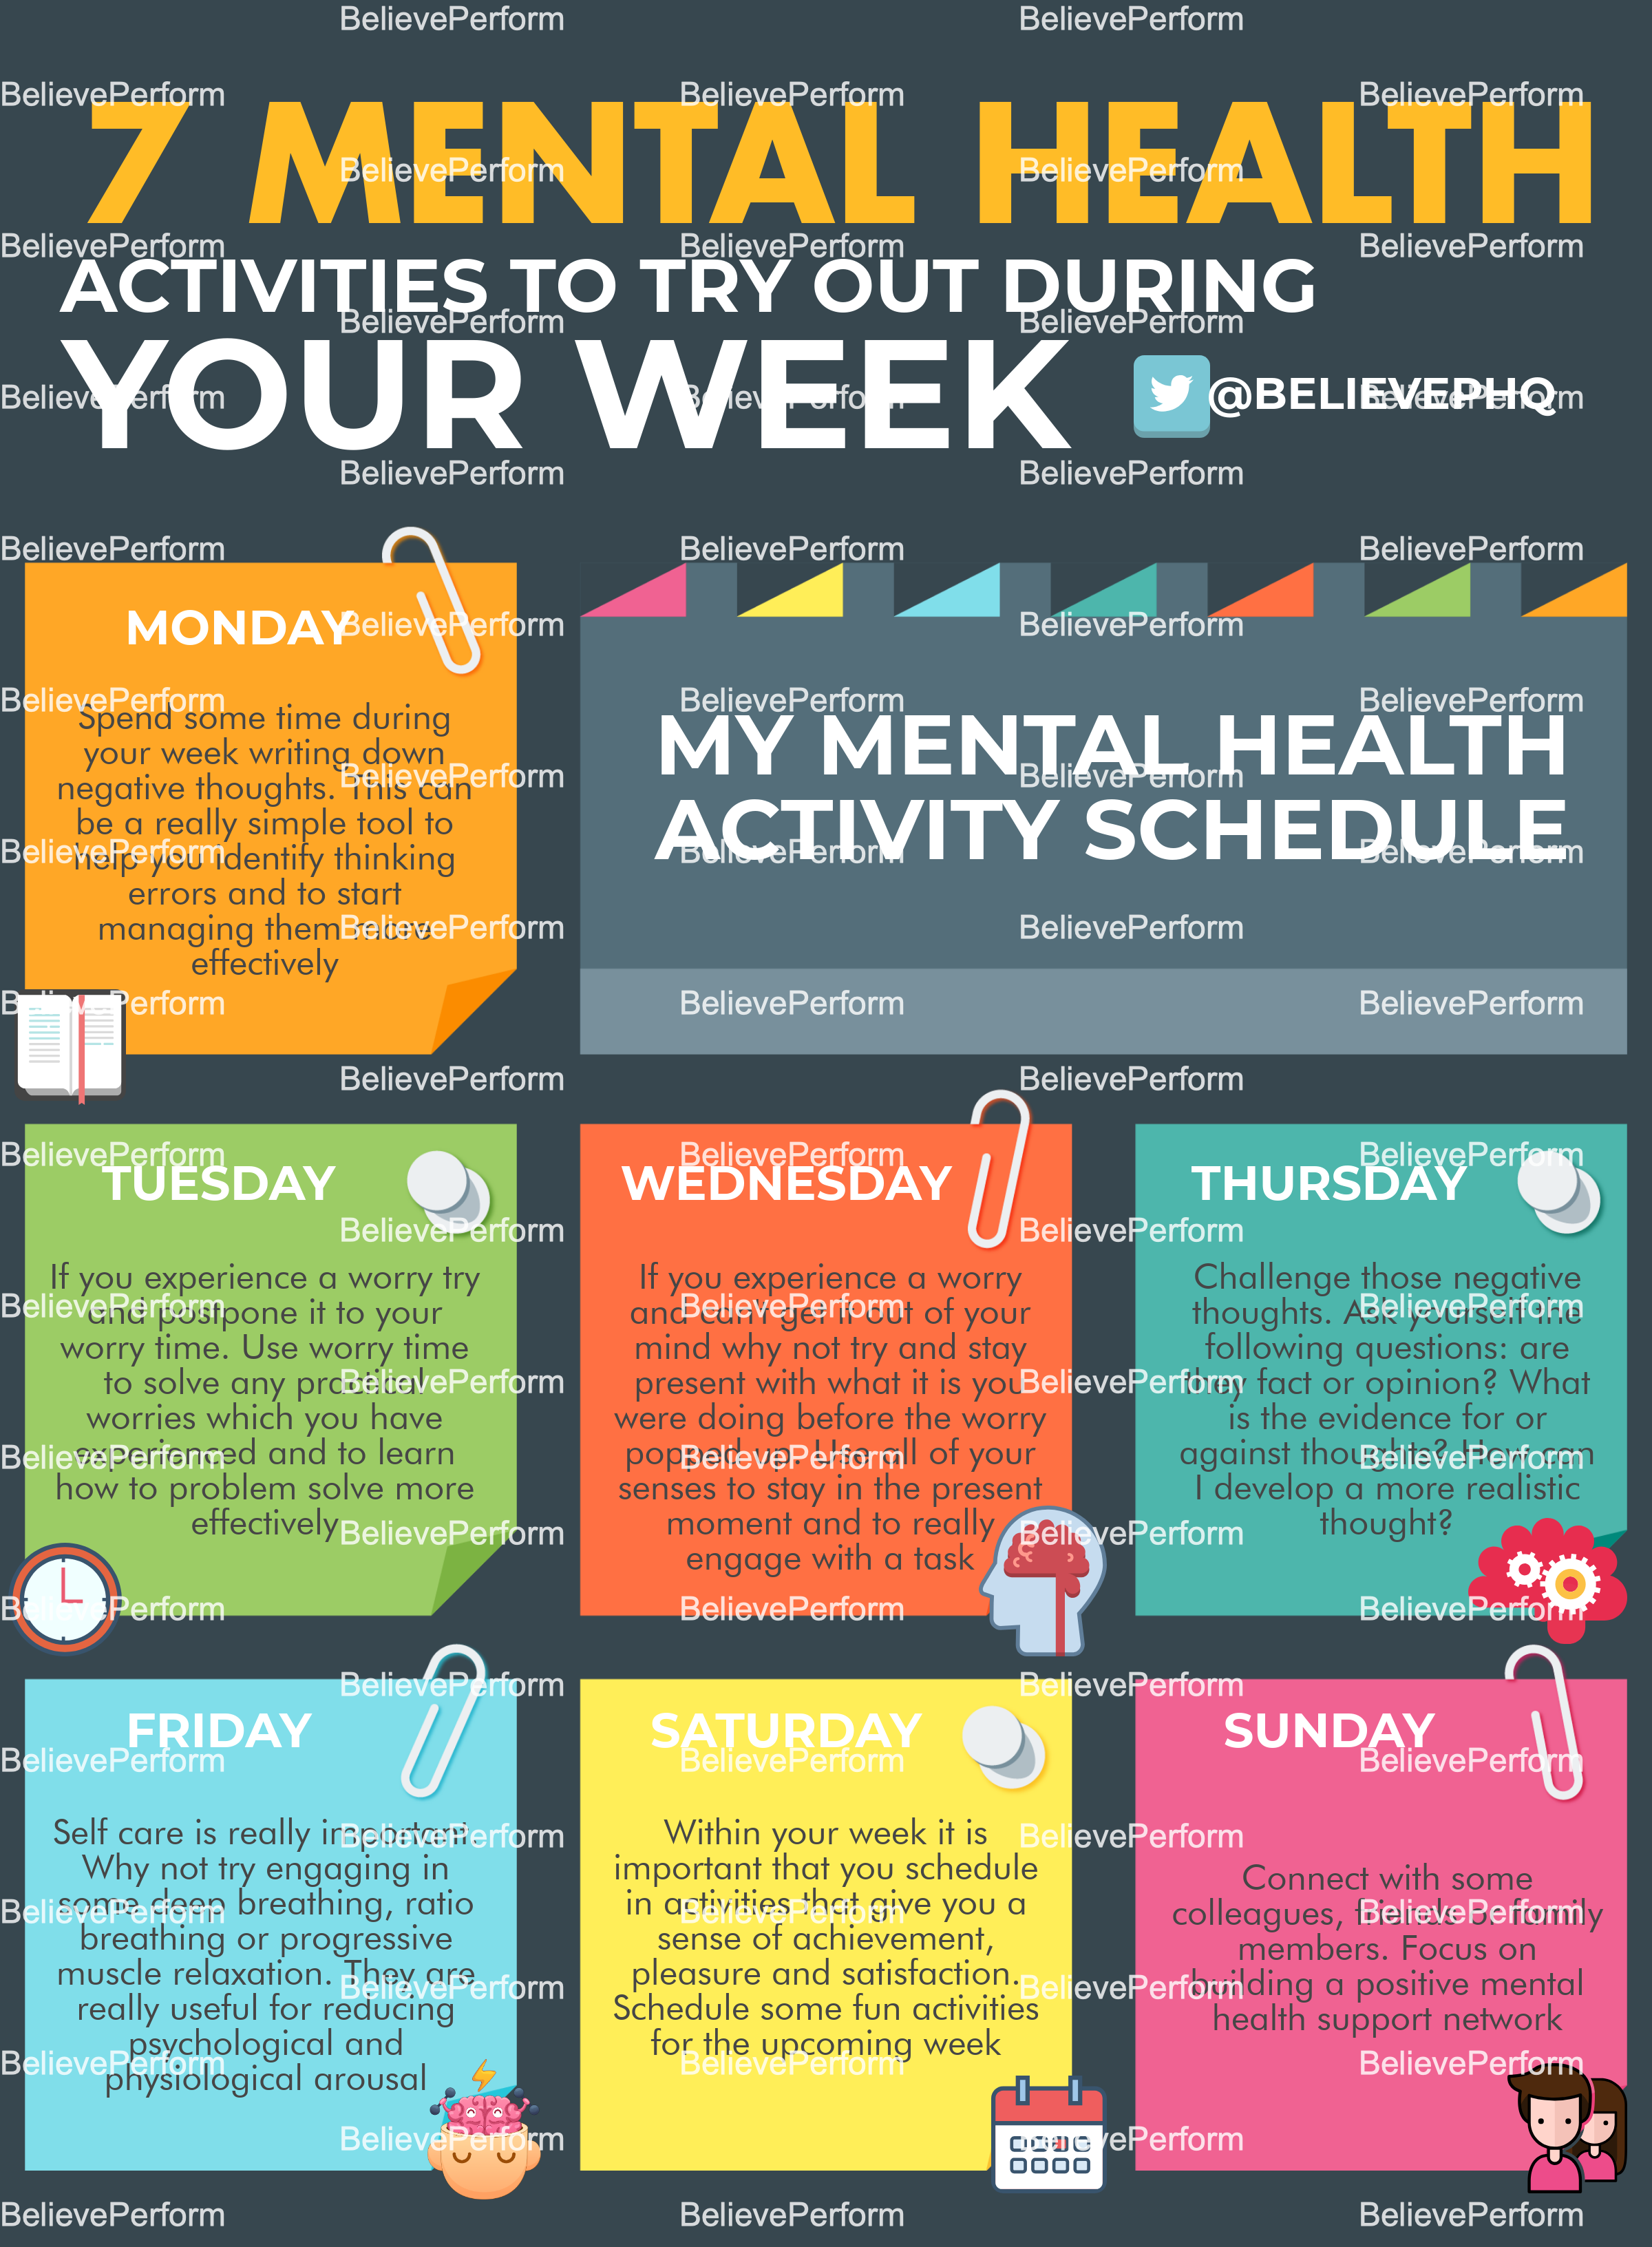 7 mental health activities to try out during the week